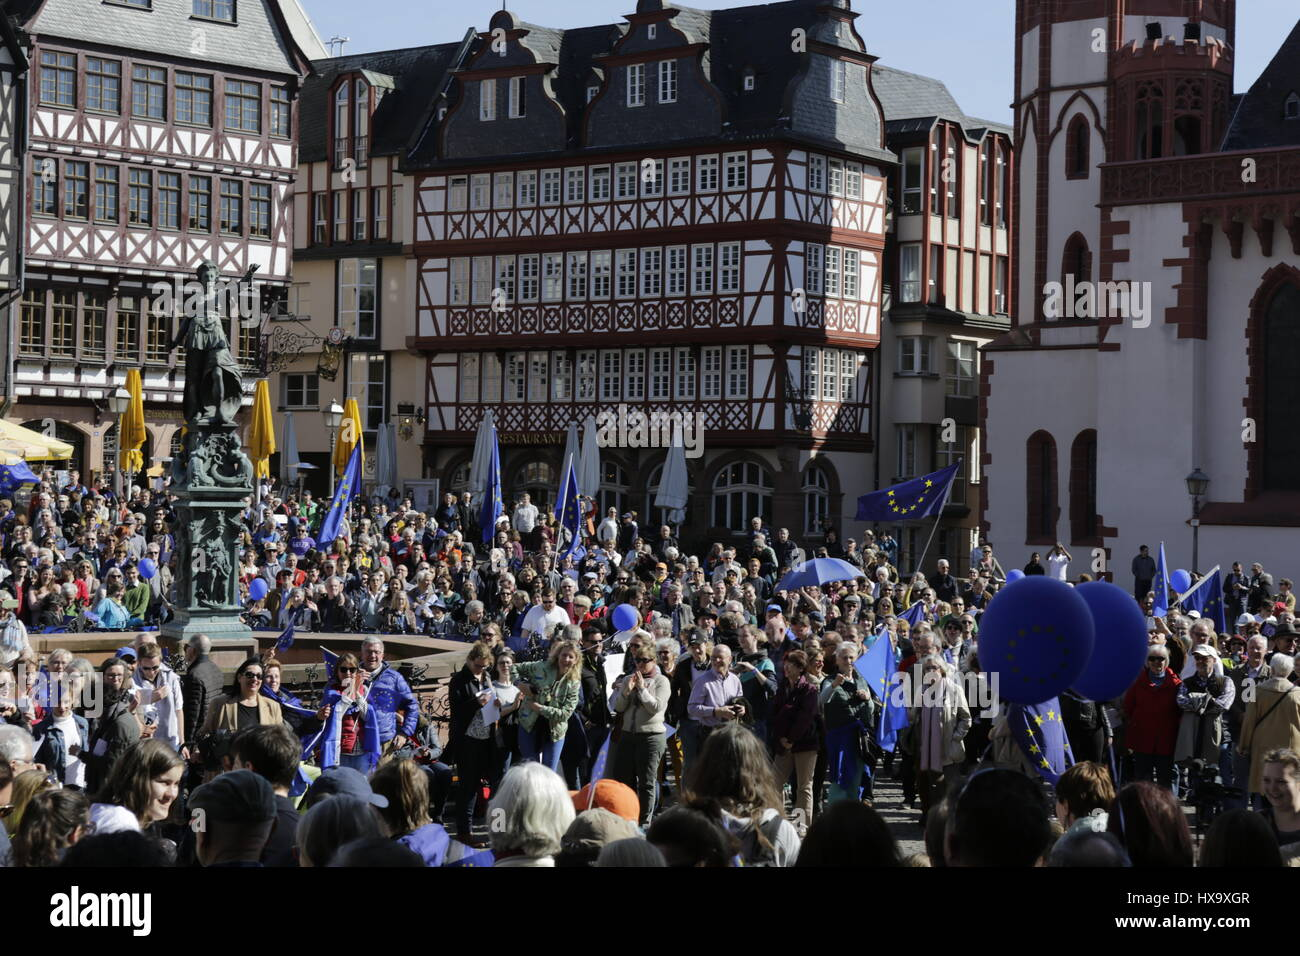 Frankfurt, Germany. 26th Mar, 2017. People have assembled outside of Frankfurt City Hall with European Union flags - Stock Image